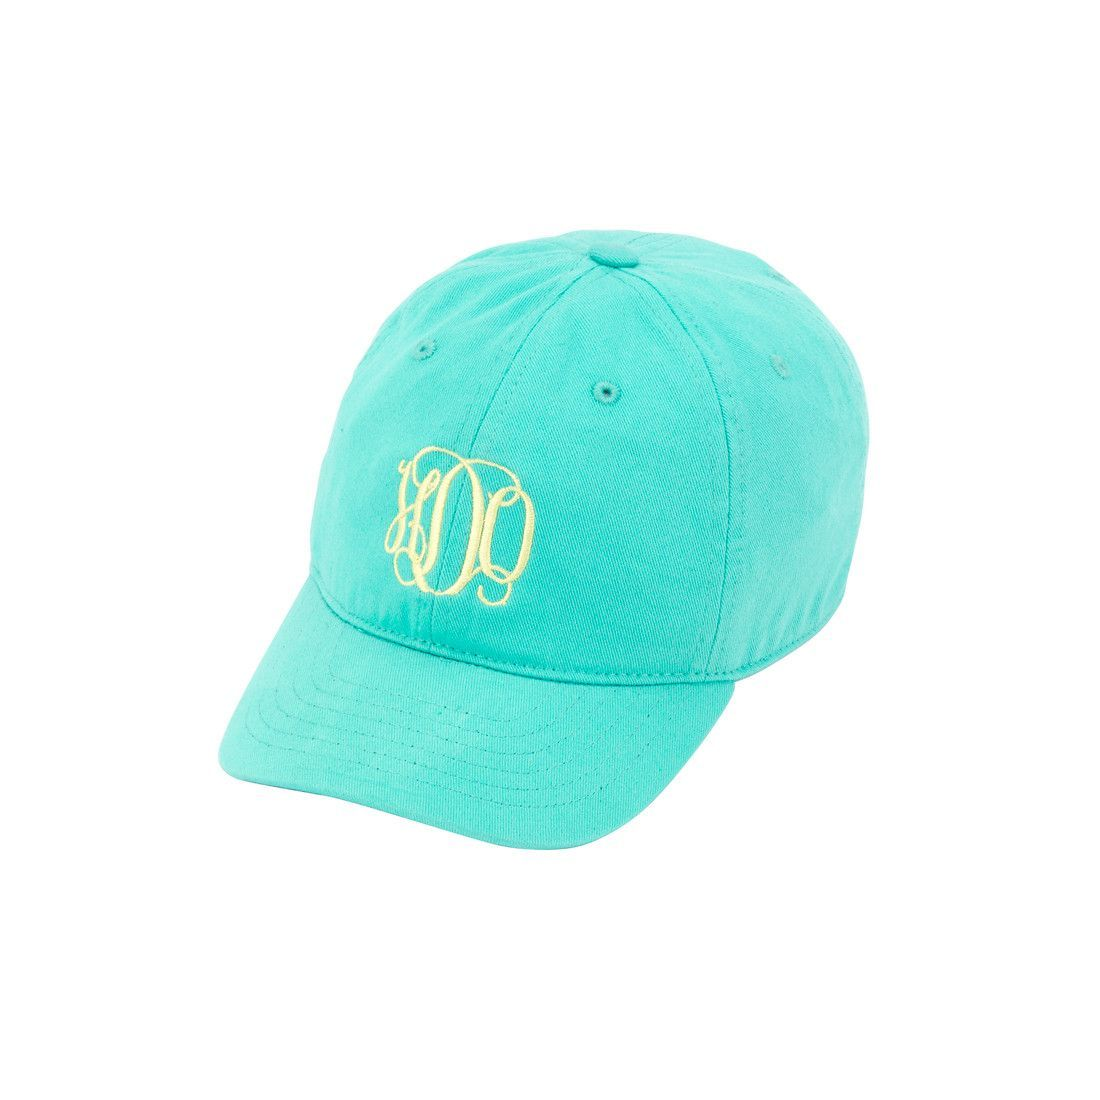 Mint Monogram Girls Cap